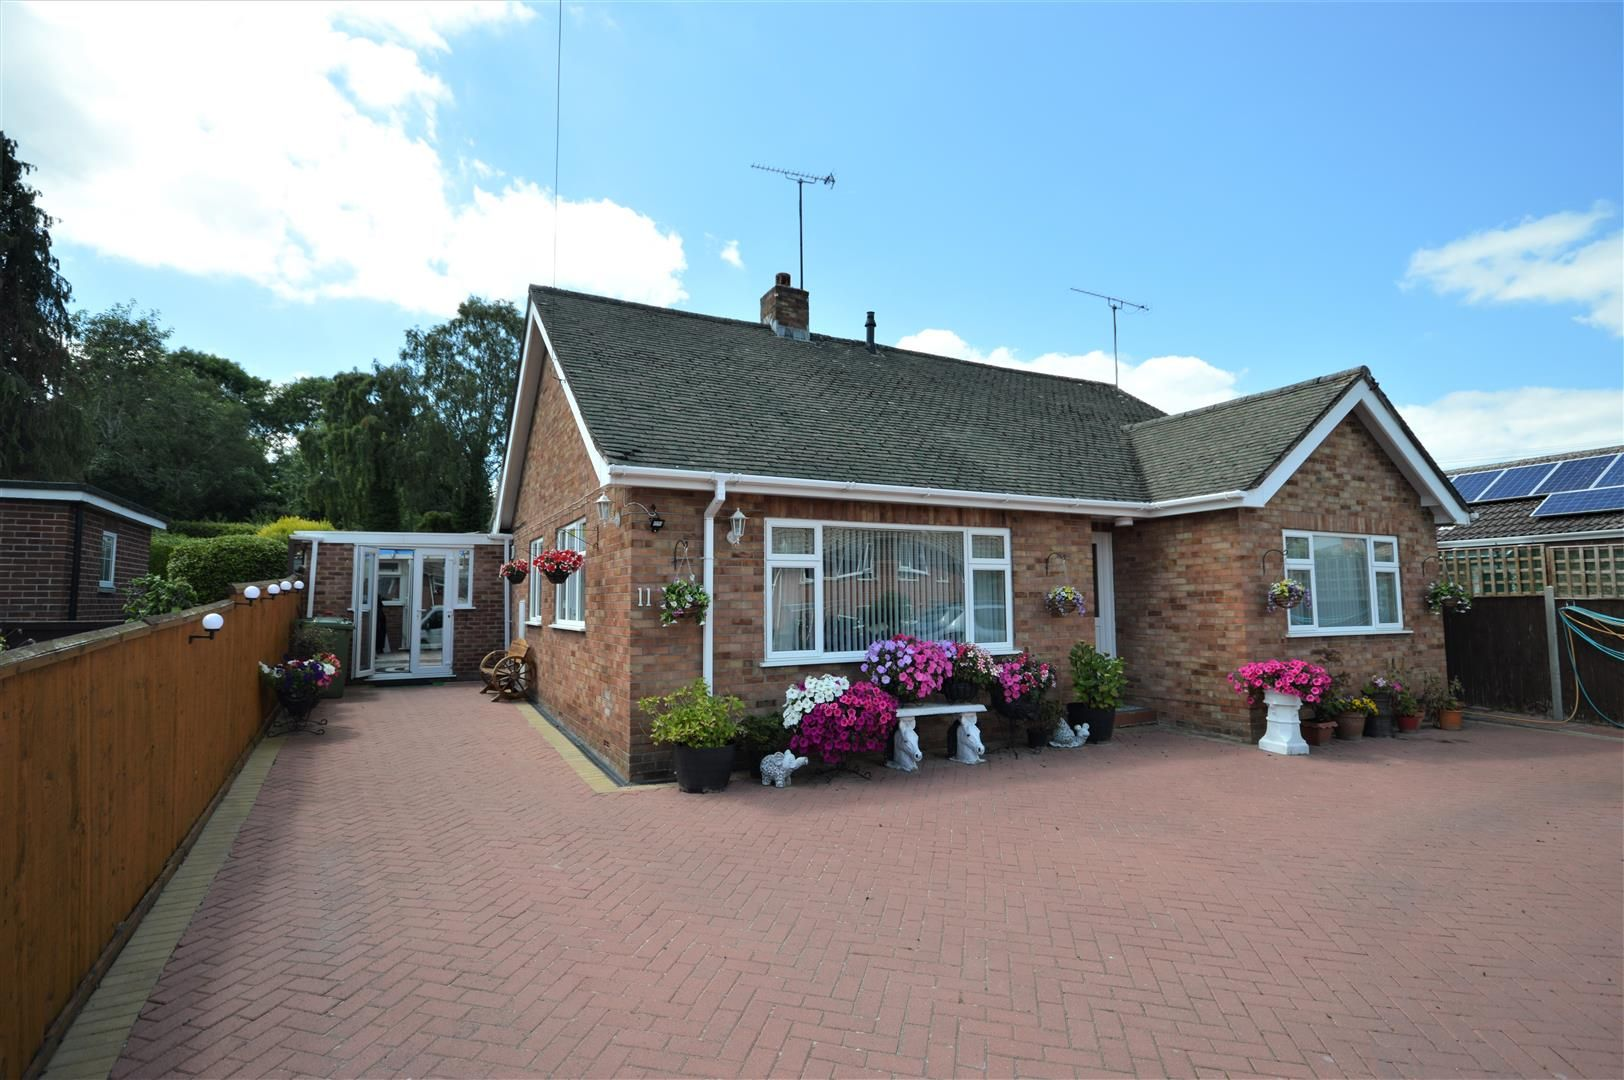 3 bed detached bungalow for sale in Leominster, HR6